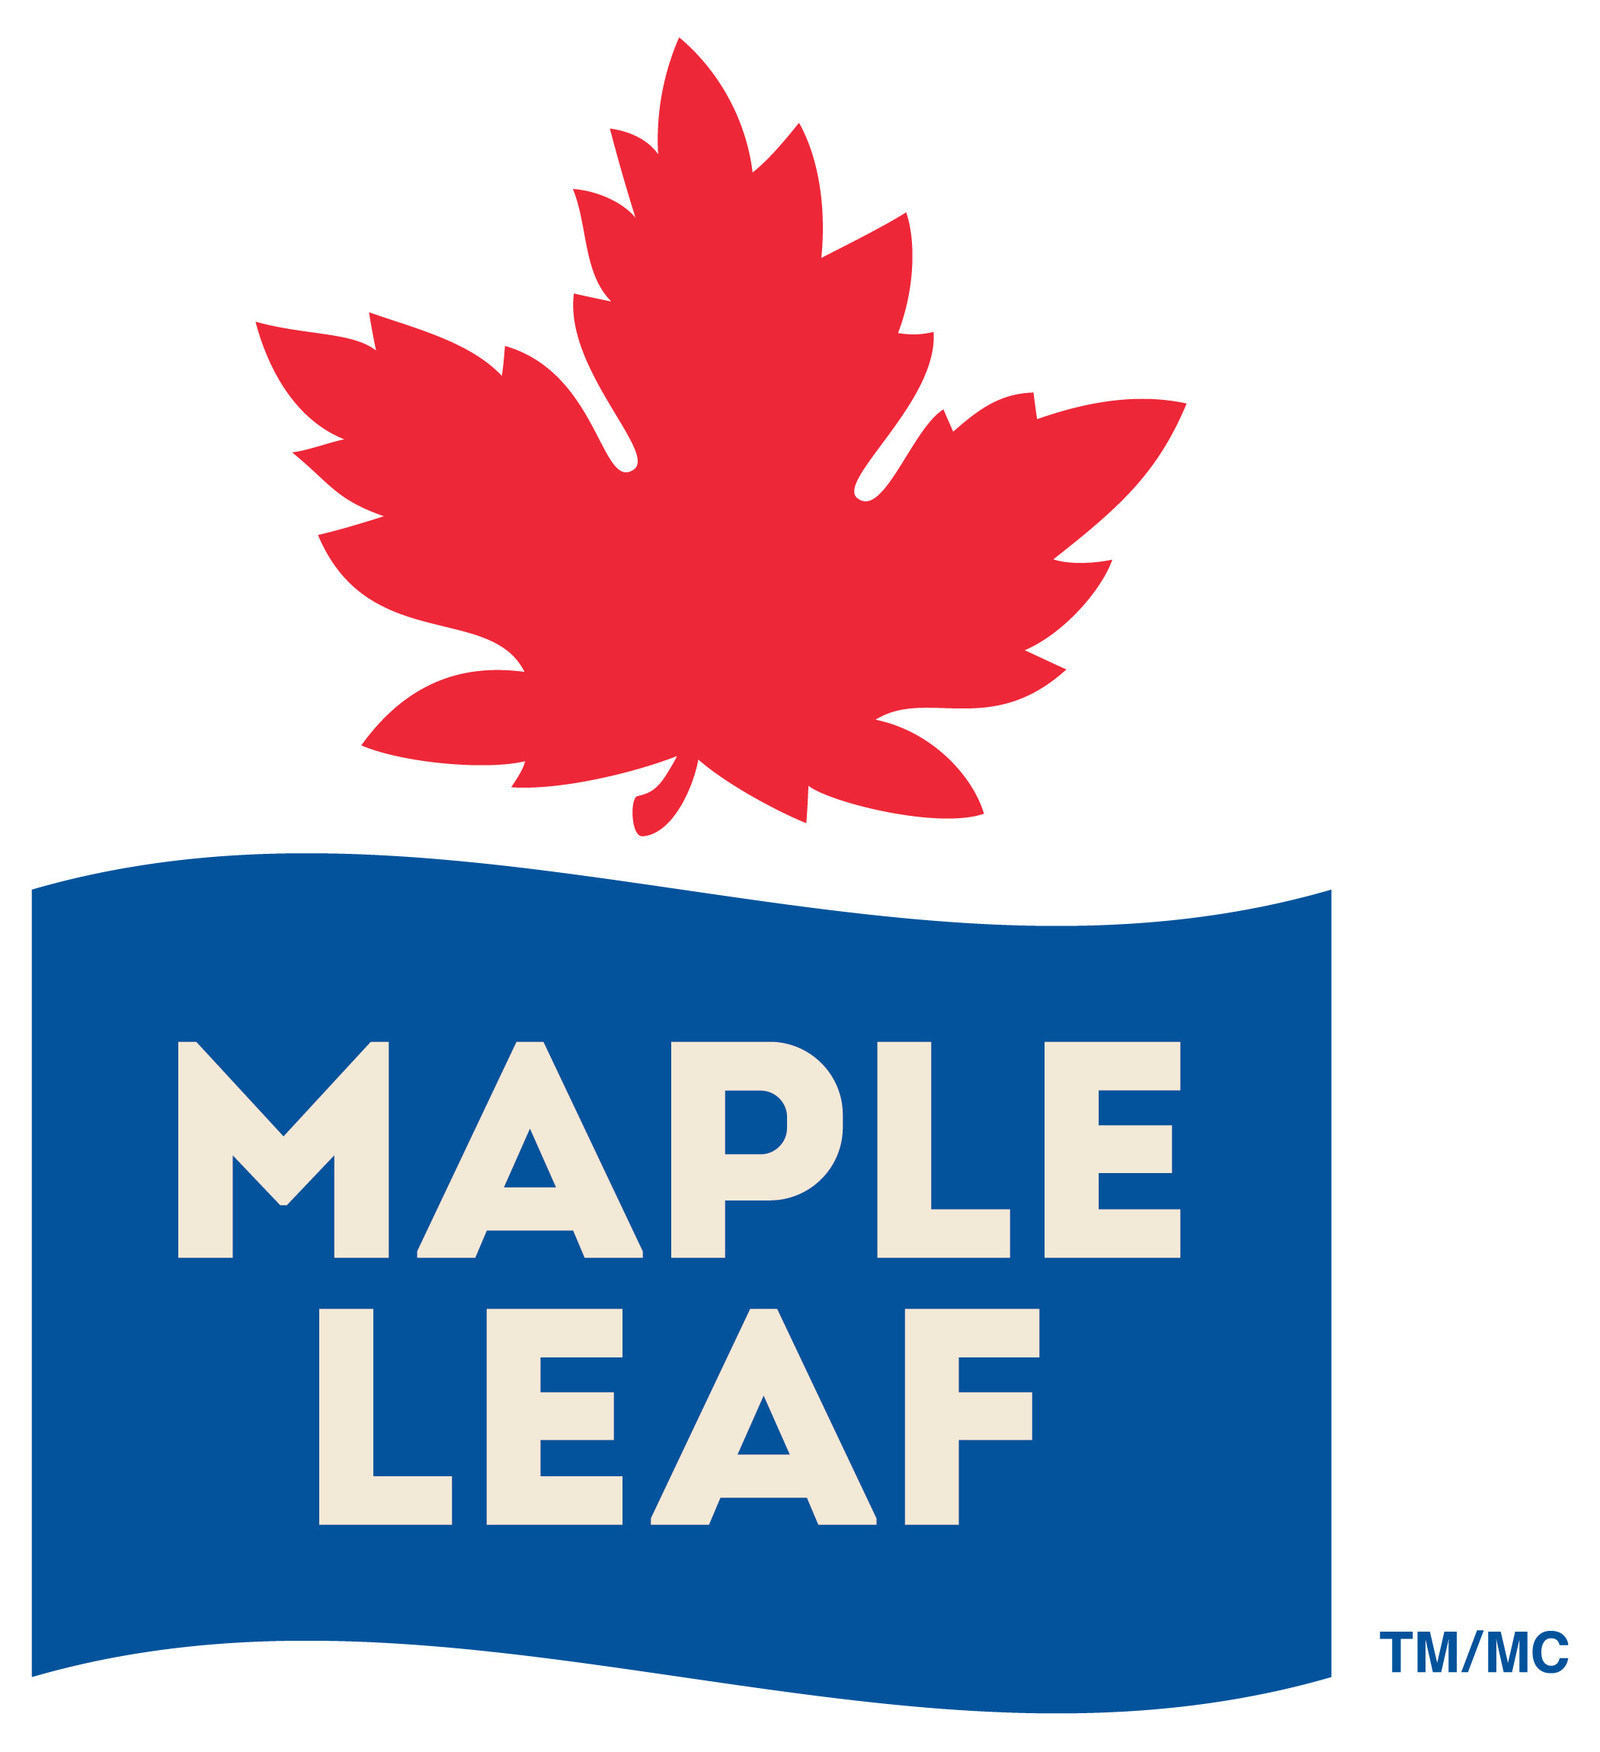 fea48d5fd3f Maple Leaf Foods Inc  Maple Leaf Joins Global CEOs to Urge Great.jpg p publish